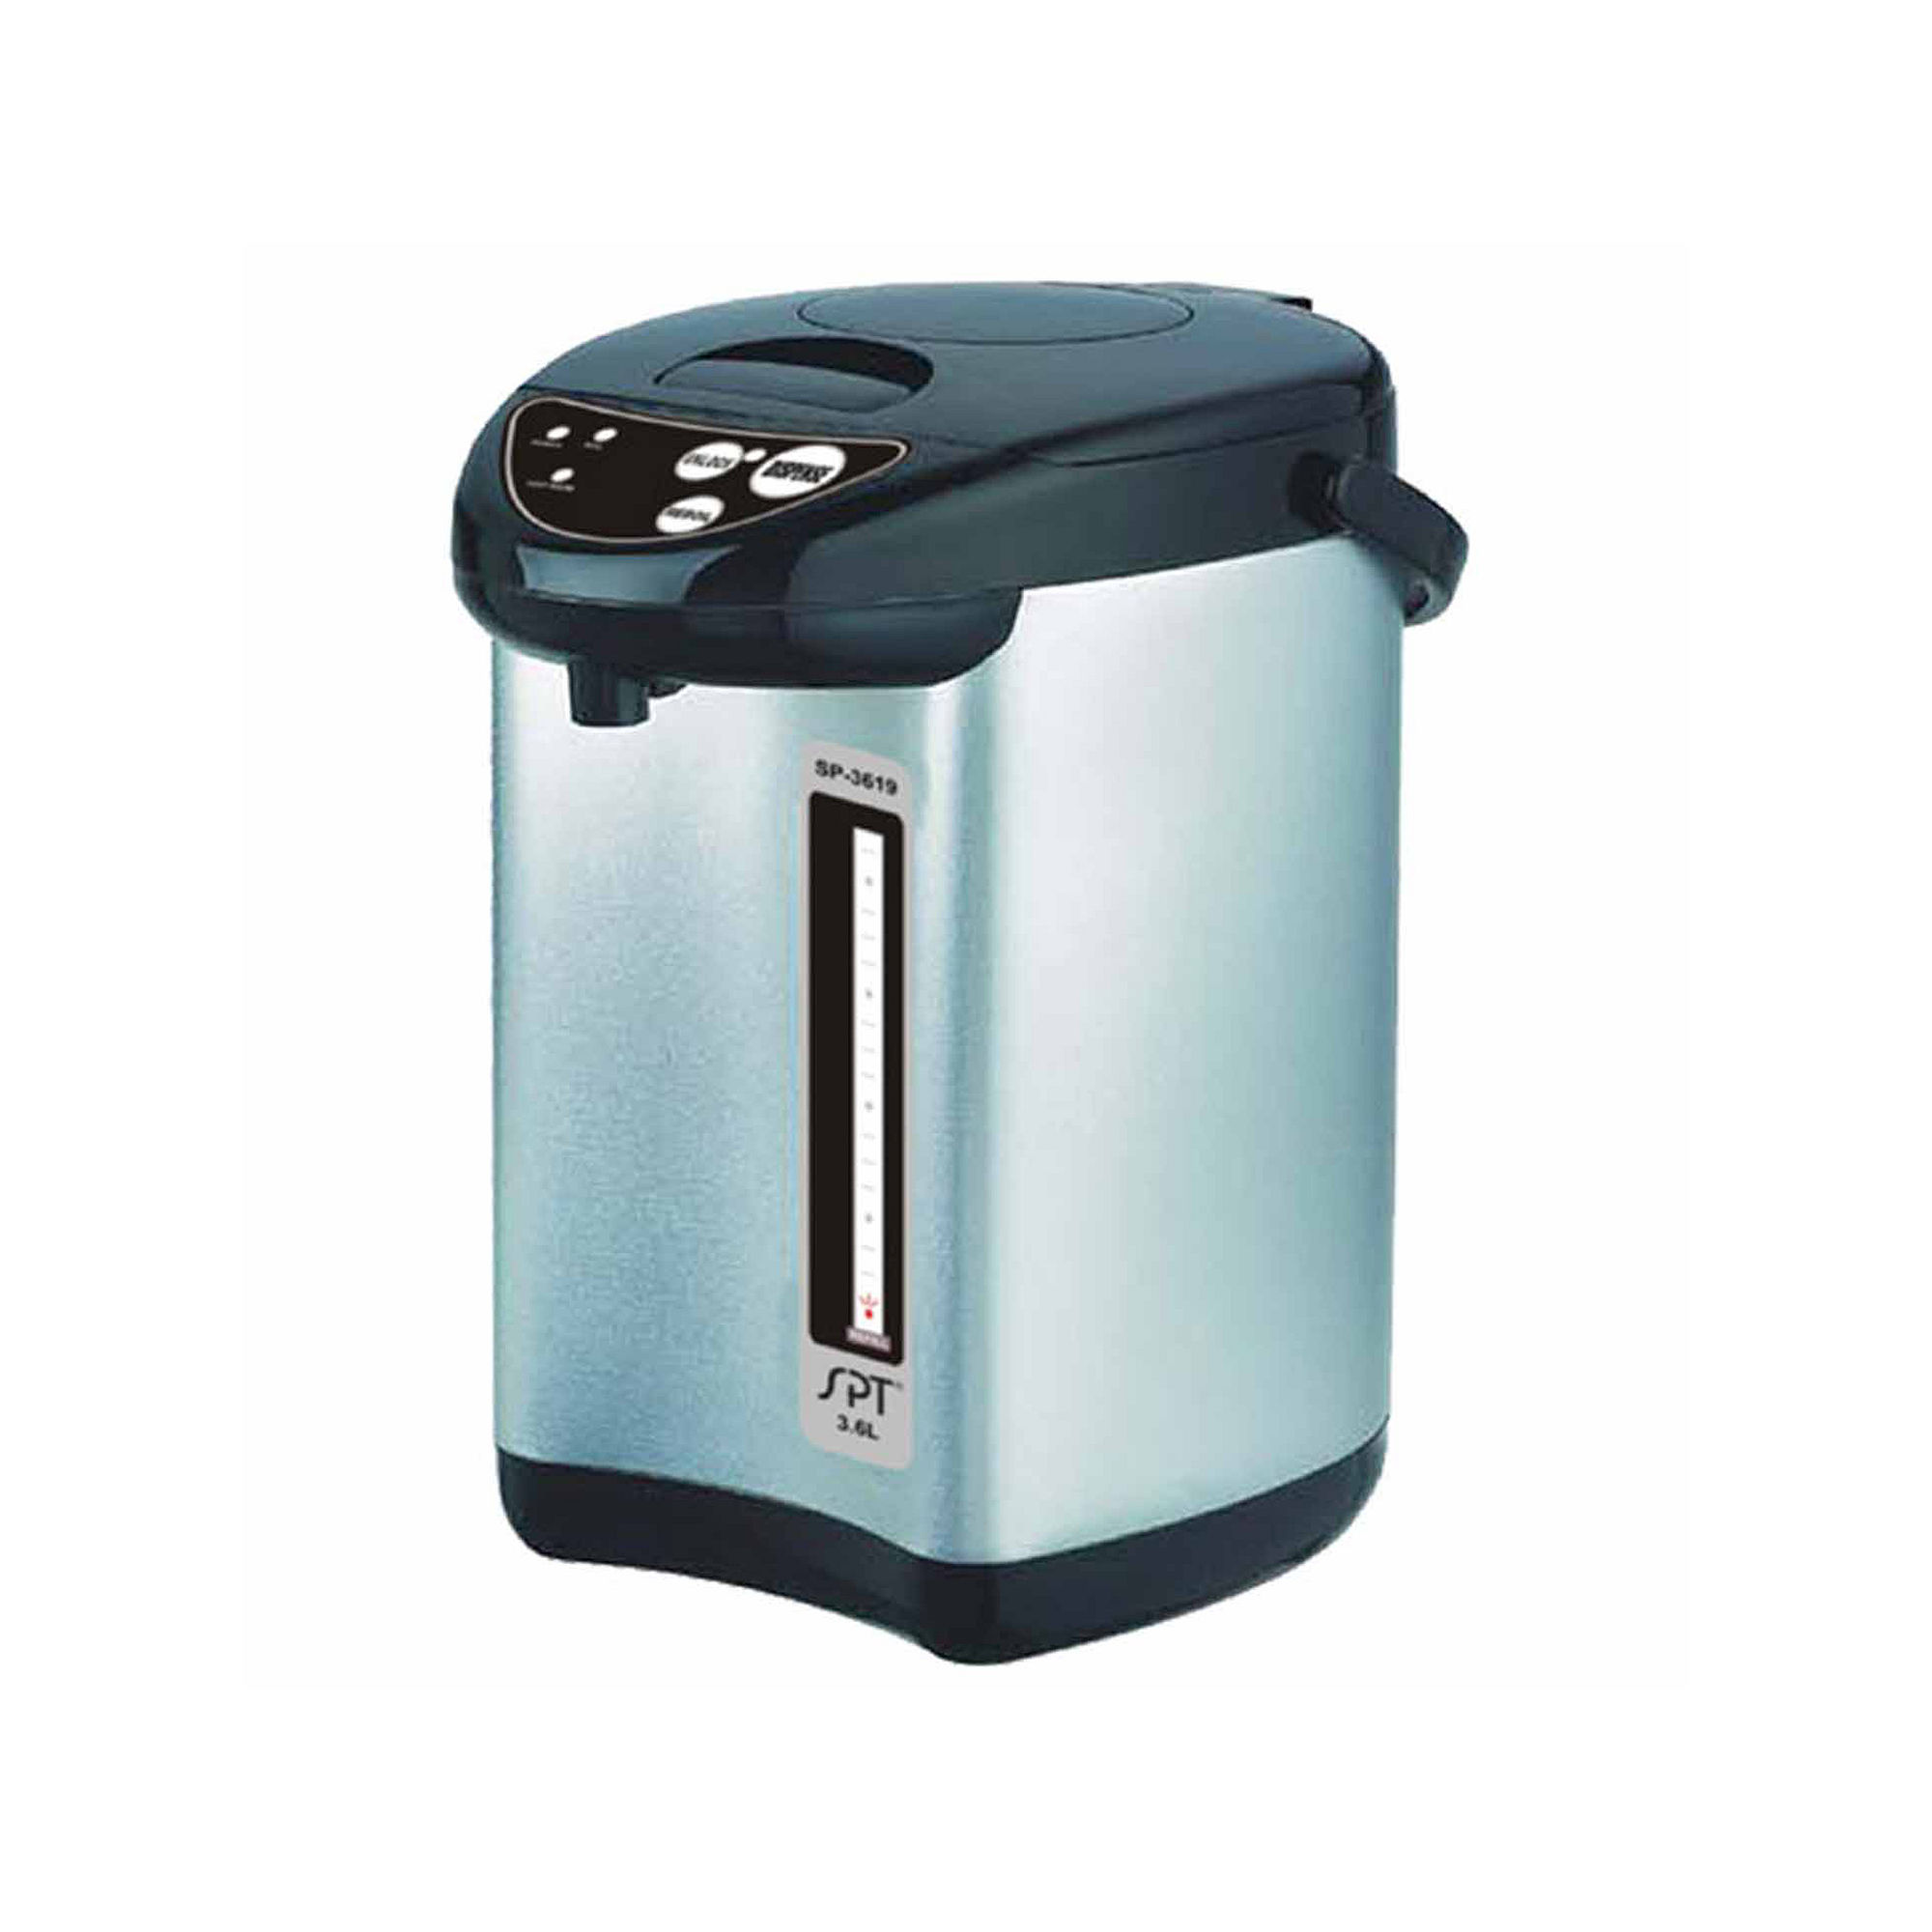 SPT SP-3619: Hot Water Pot with Dual-Pump System 3.6 L